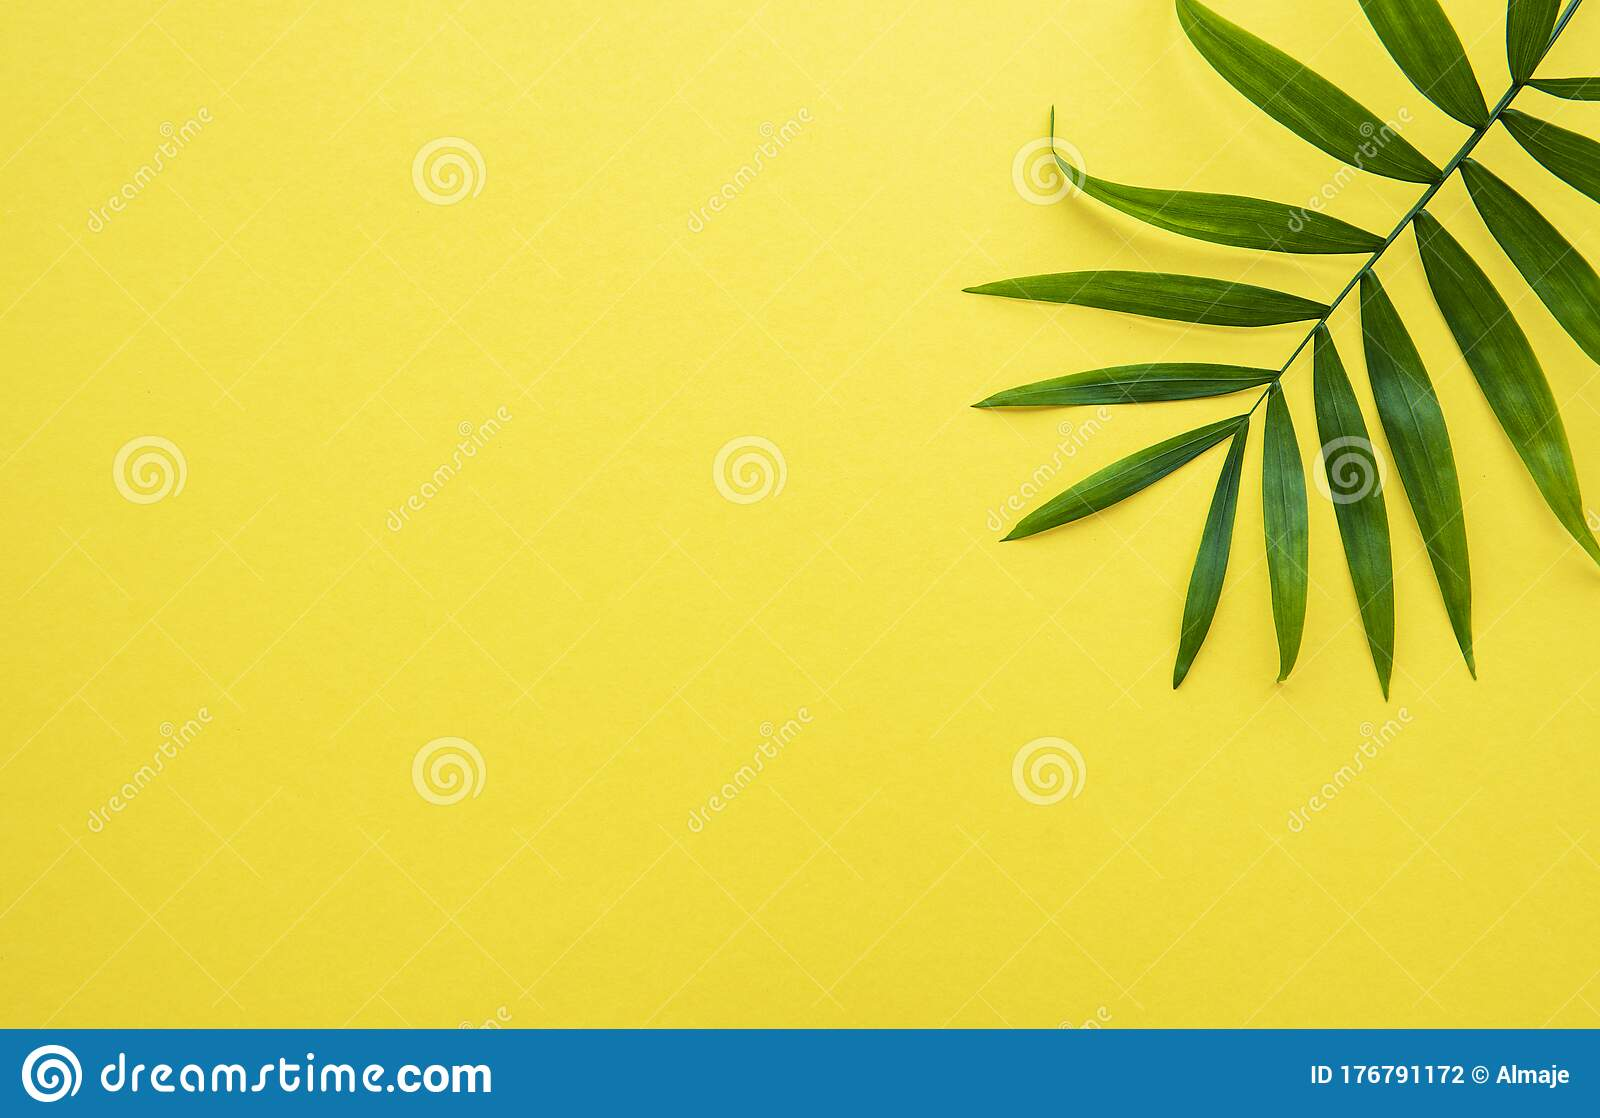 Palm Leaves On Yellow Background Stock Photo Image Of Frame Minimal 176791172 Share yellow background with your friends. palm leaves on yellow background stock photo image of frame minimal 176791172